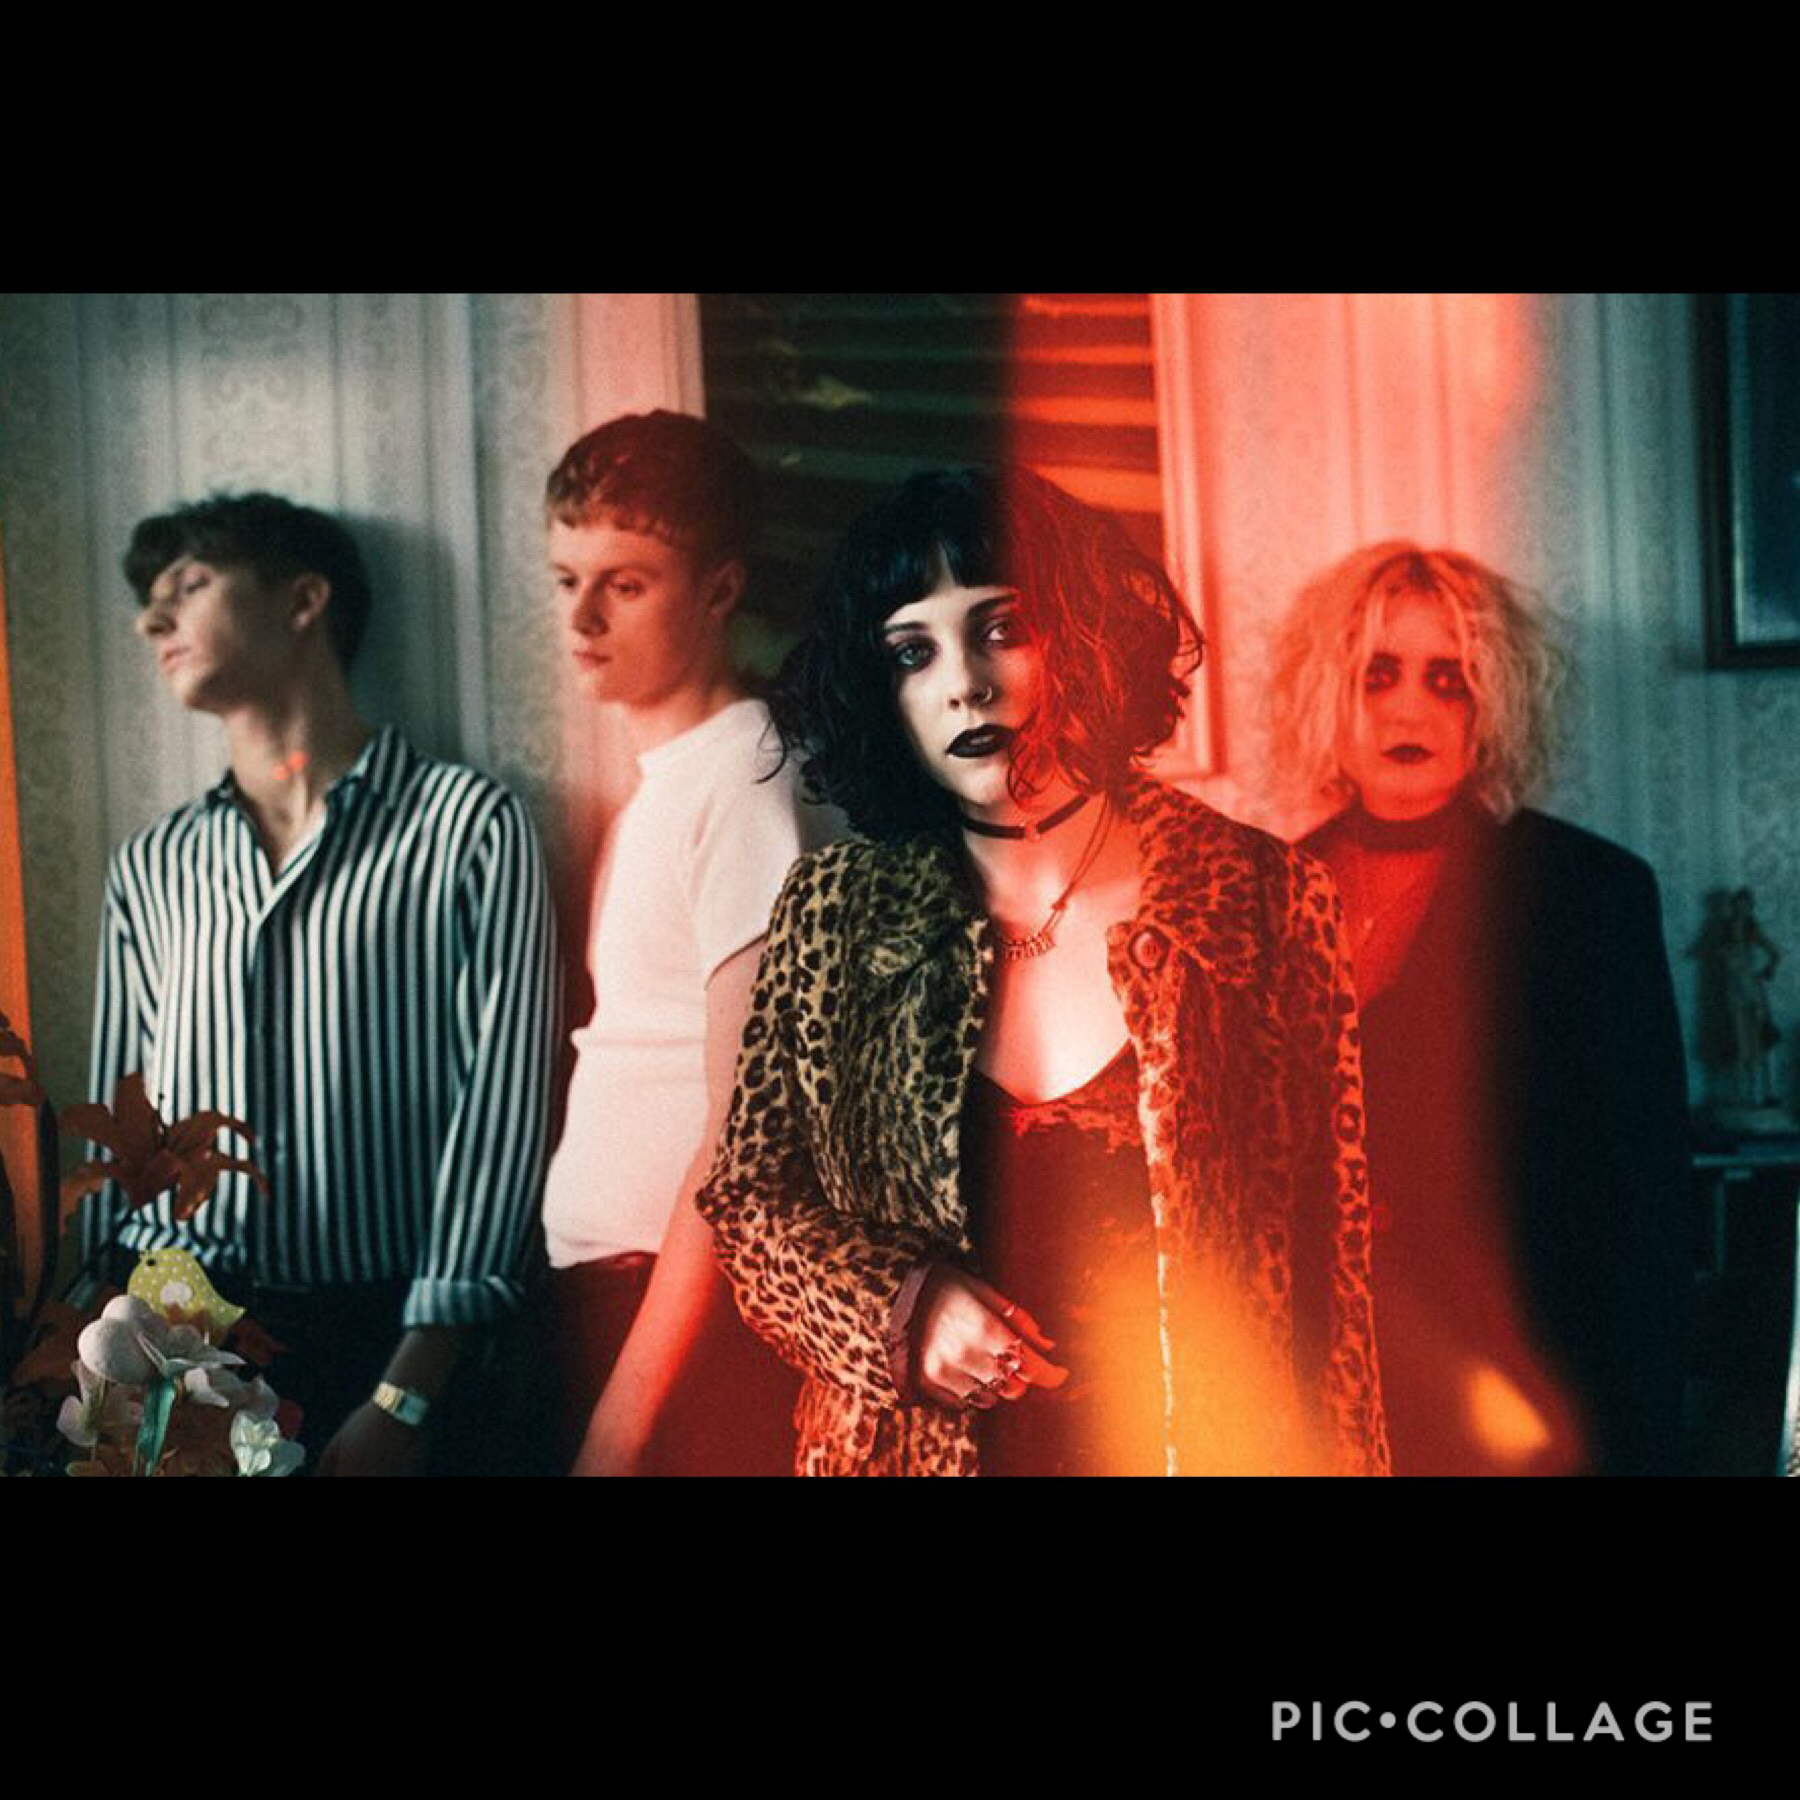 🌊 Ta p p y t a p 🌊   Issa Pale Waves their music is amazing go check em out. Also I'm bored so if you wanna Rp then hmu. Also I make icons so if ya want one just comment details on what you want